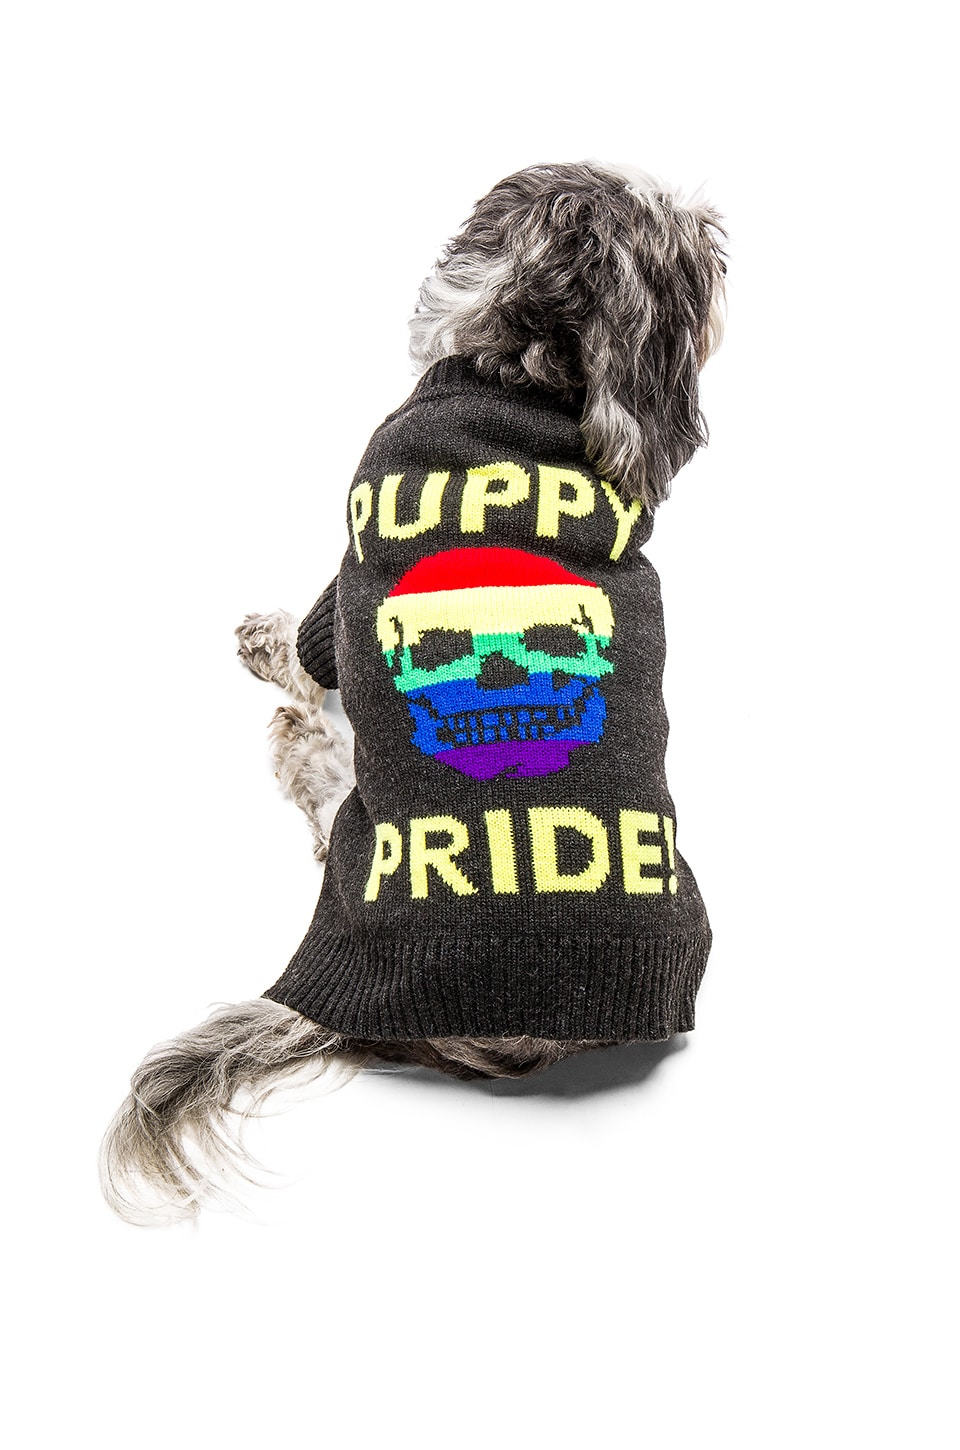 360 Sweater Puppy Pride Dog Sweater in Charcoal & Rainbow